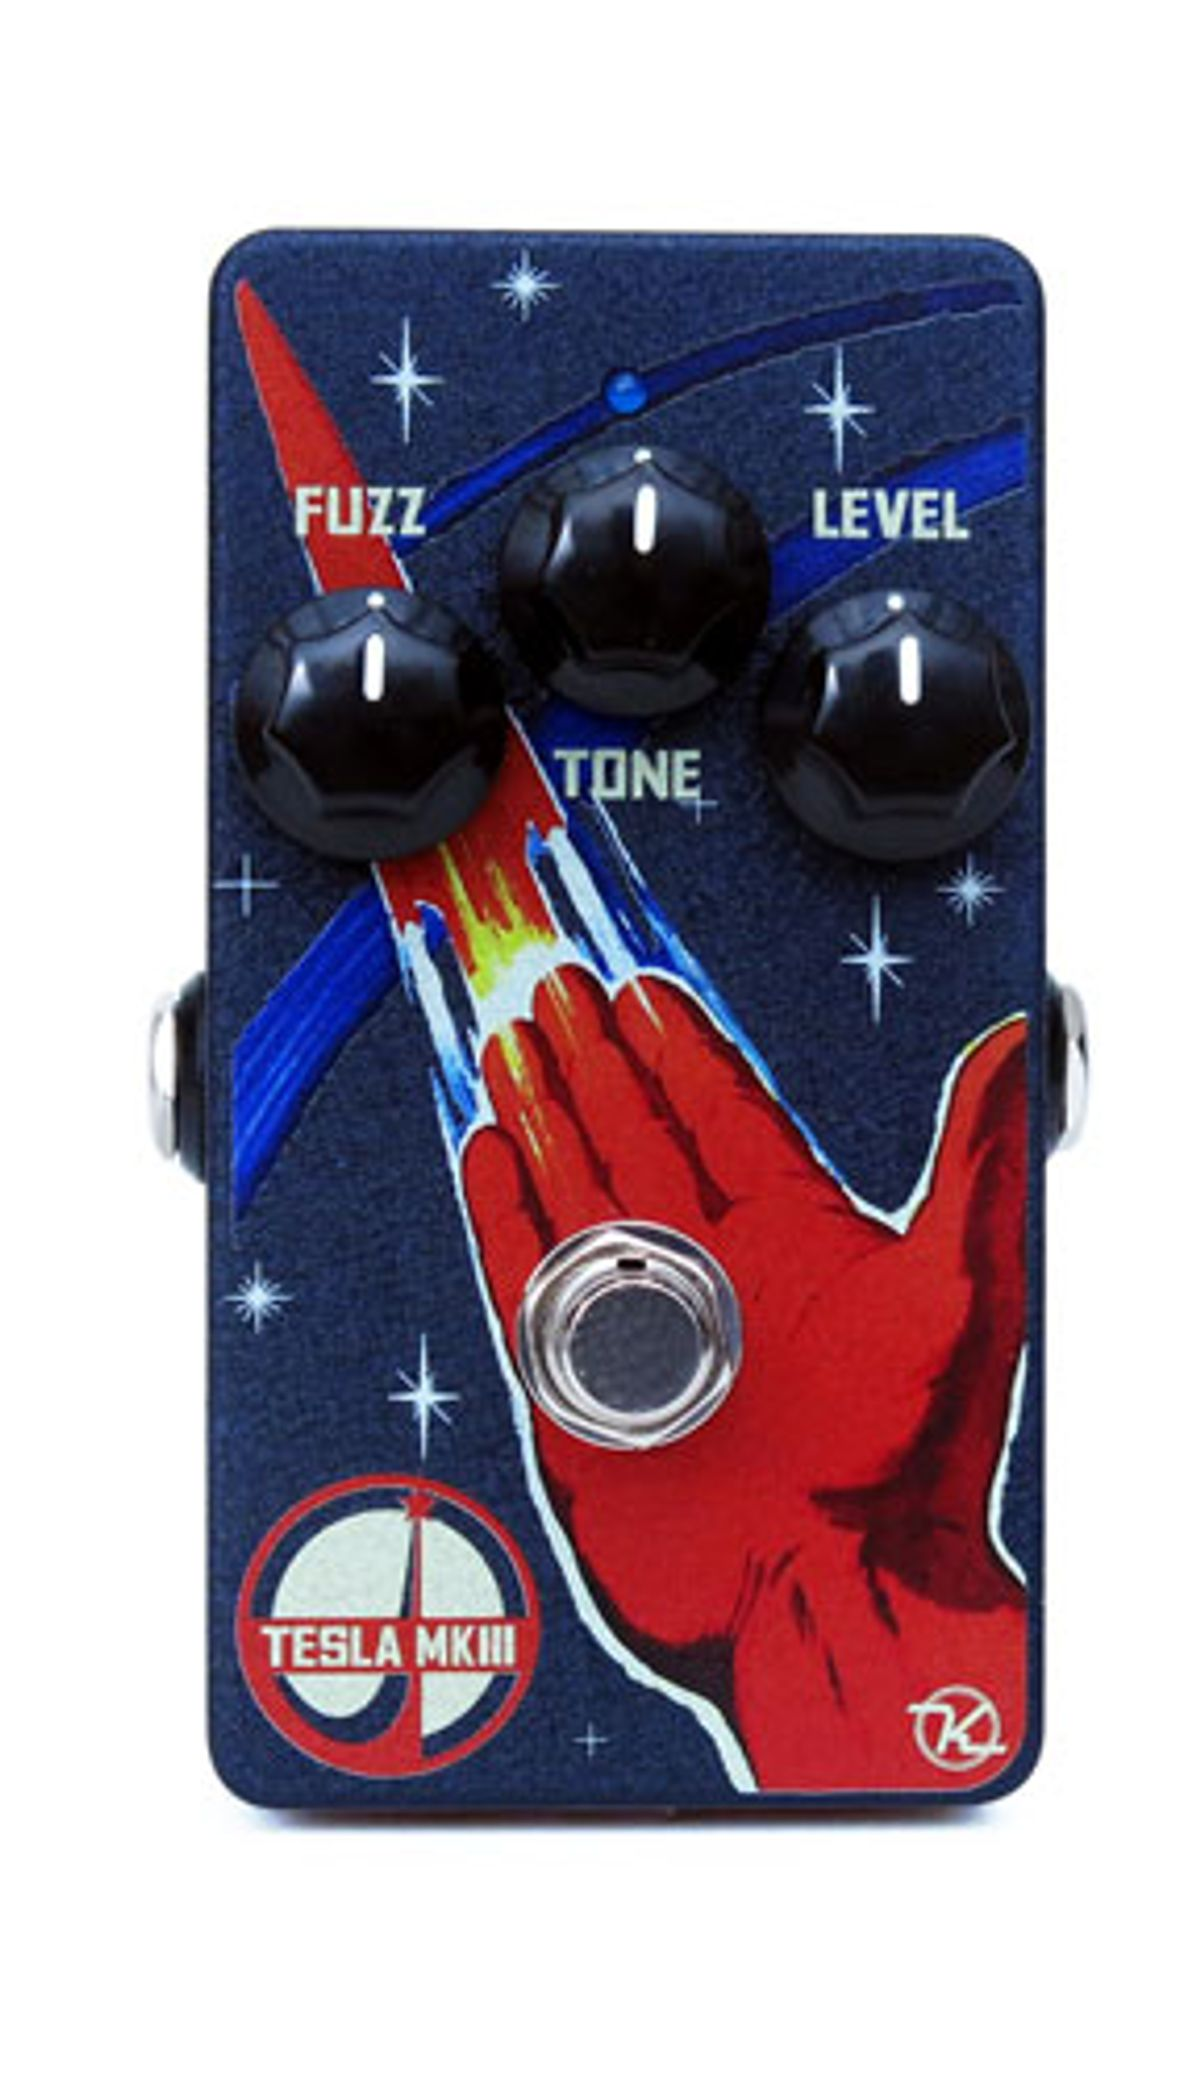 Keeley Electronics Unveils the Tesla MKIII Germanium Fuzz